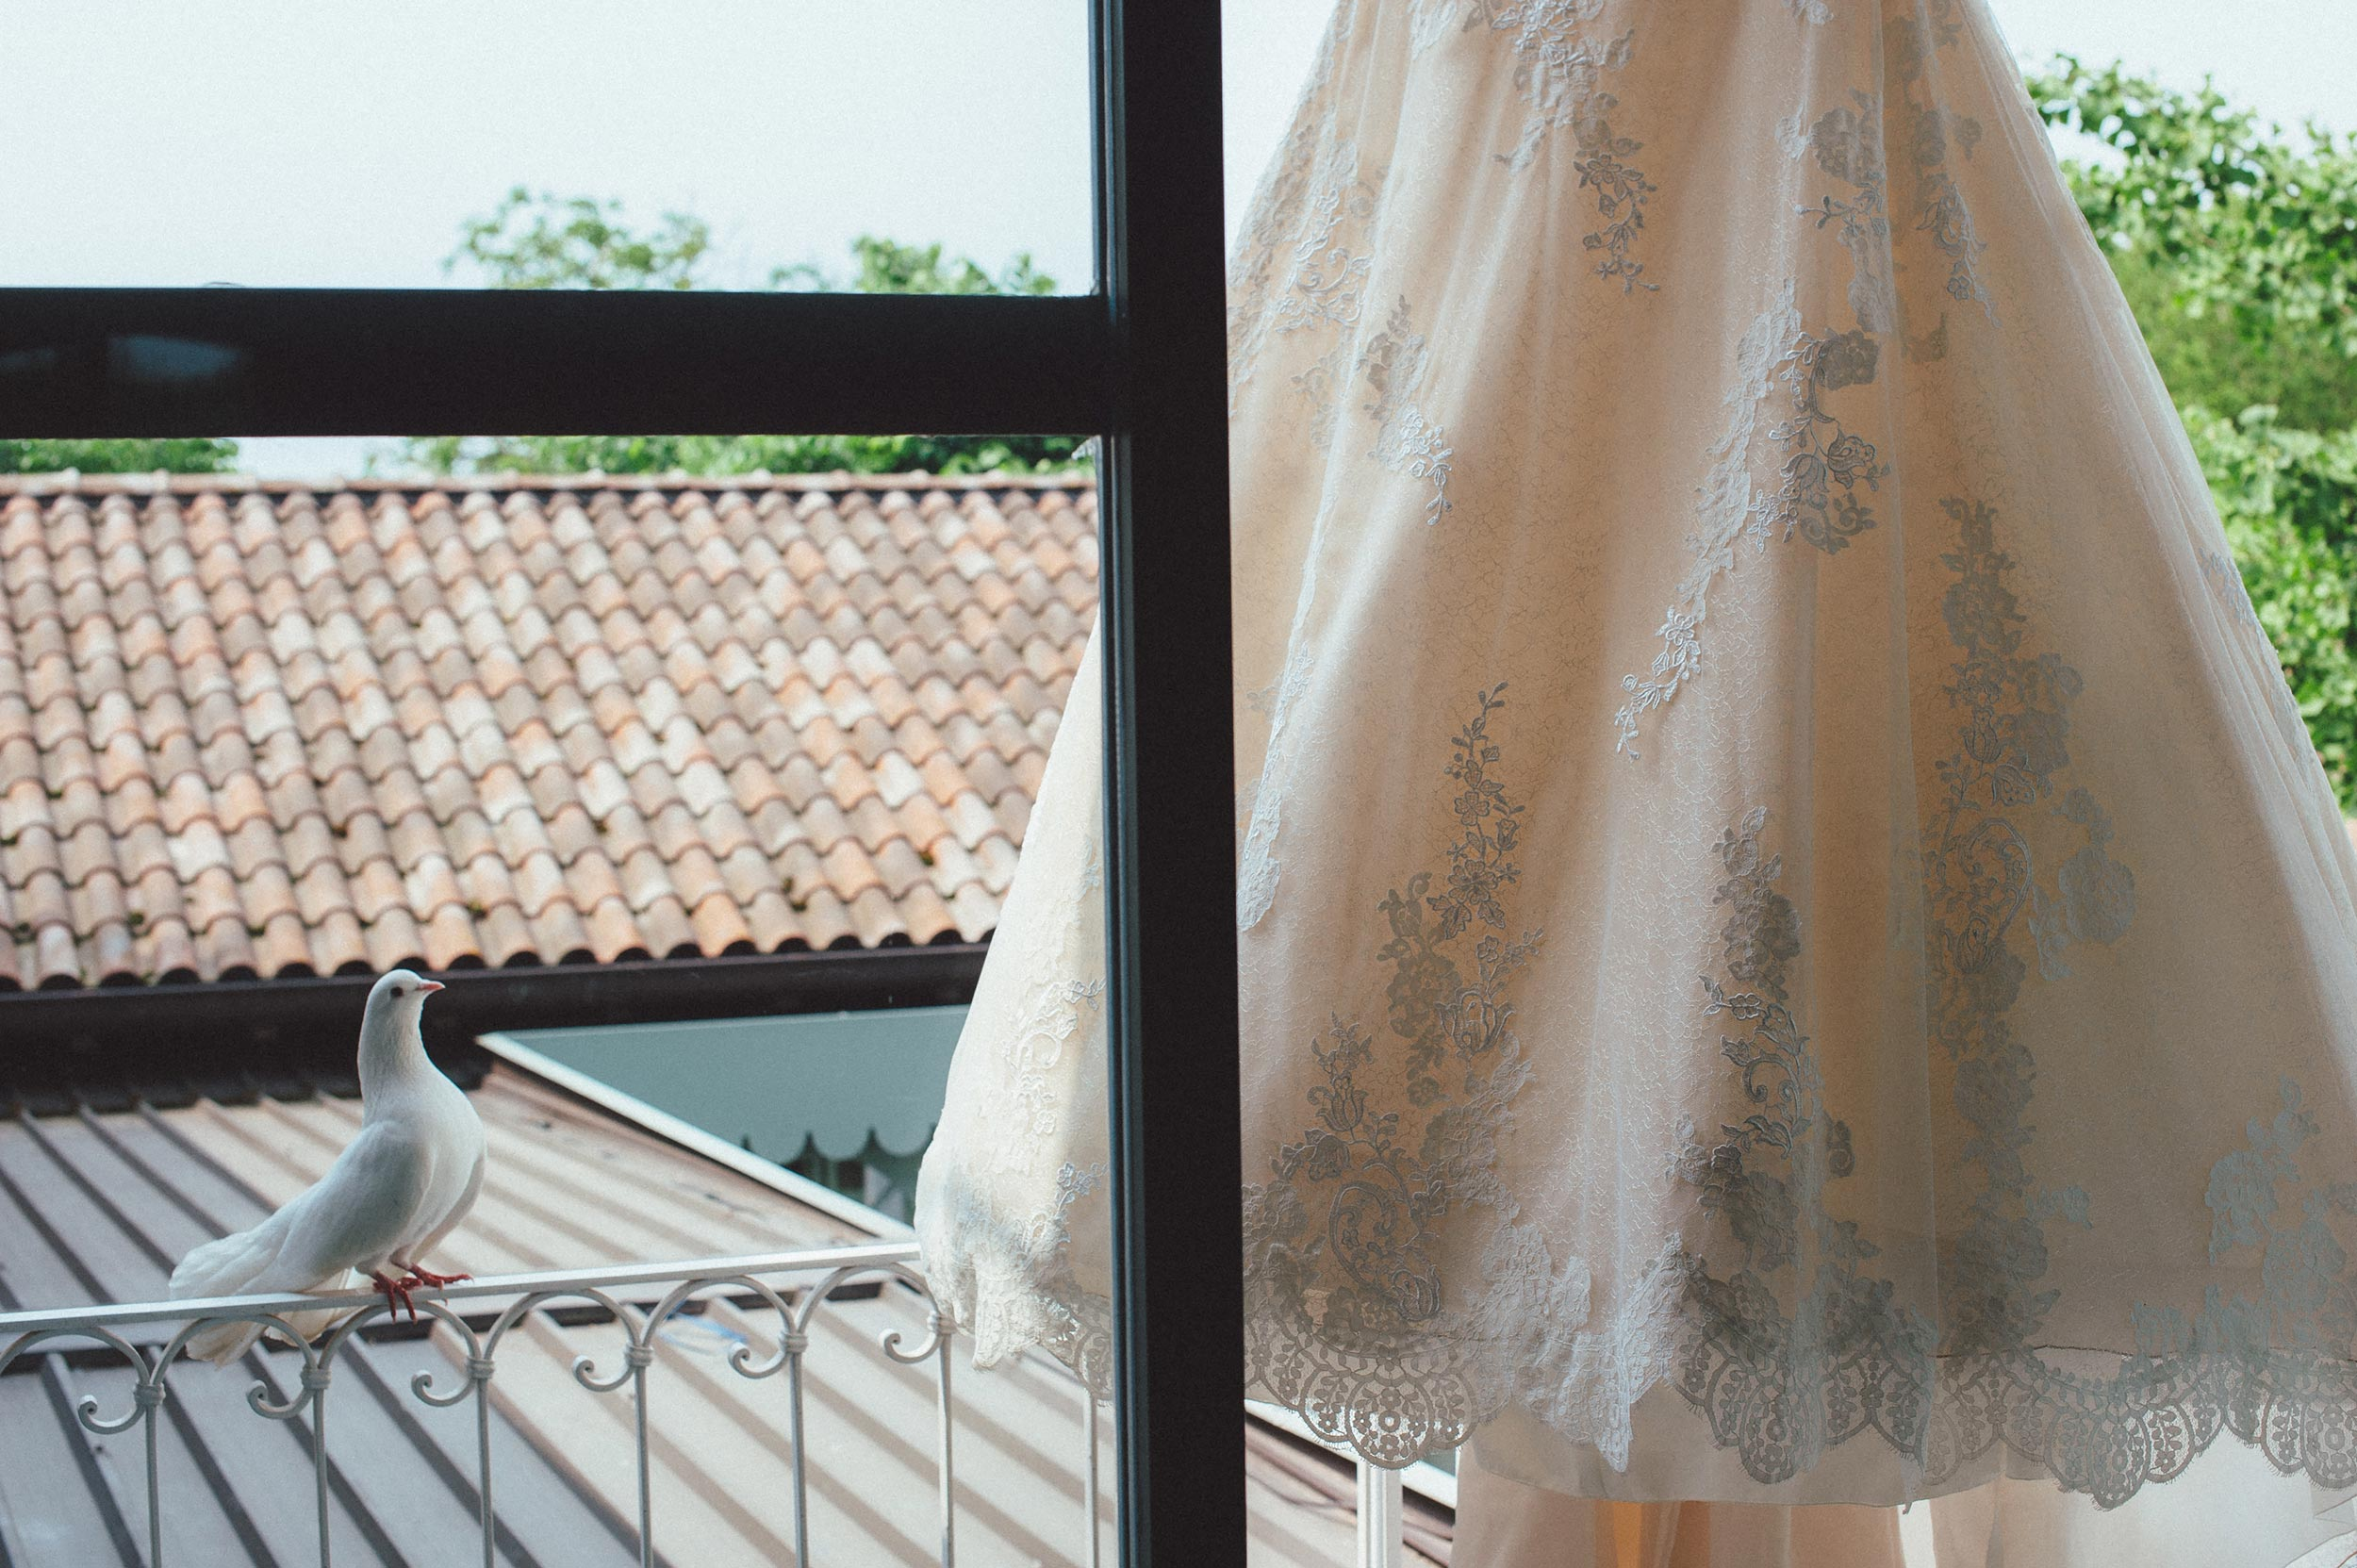 the-dove-and-the-wedding-dress-in-italy.jpg